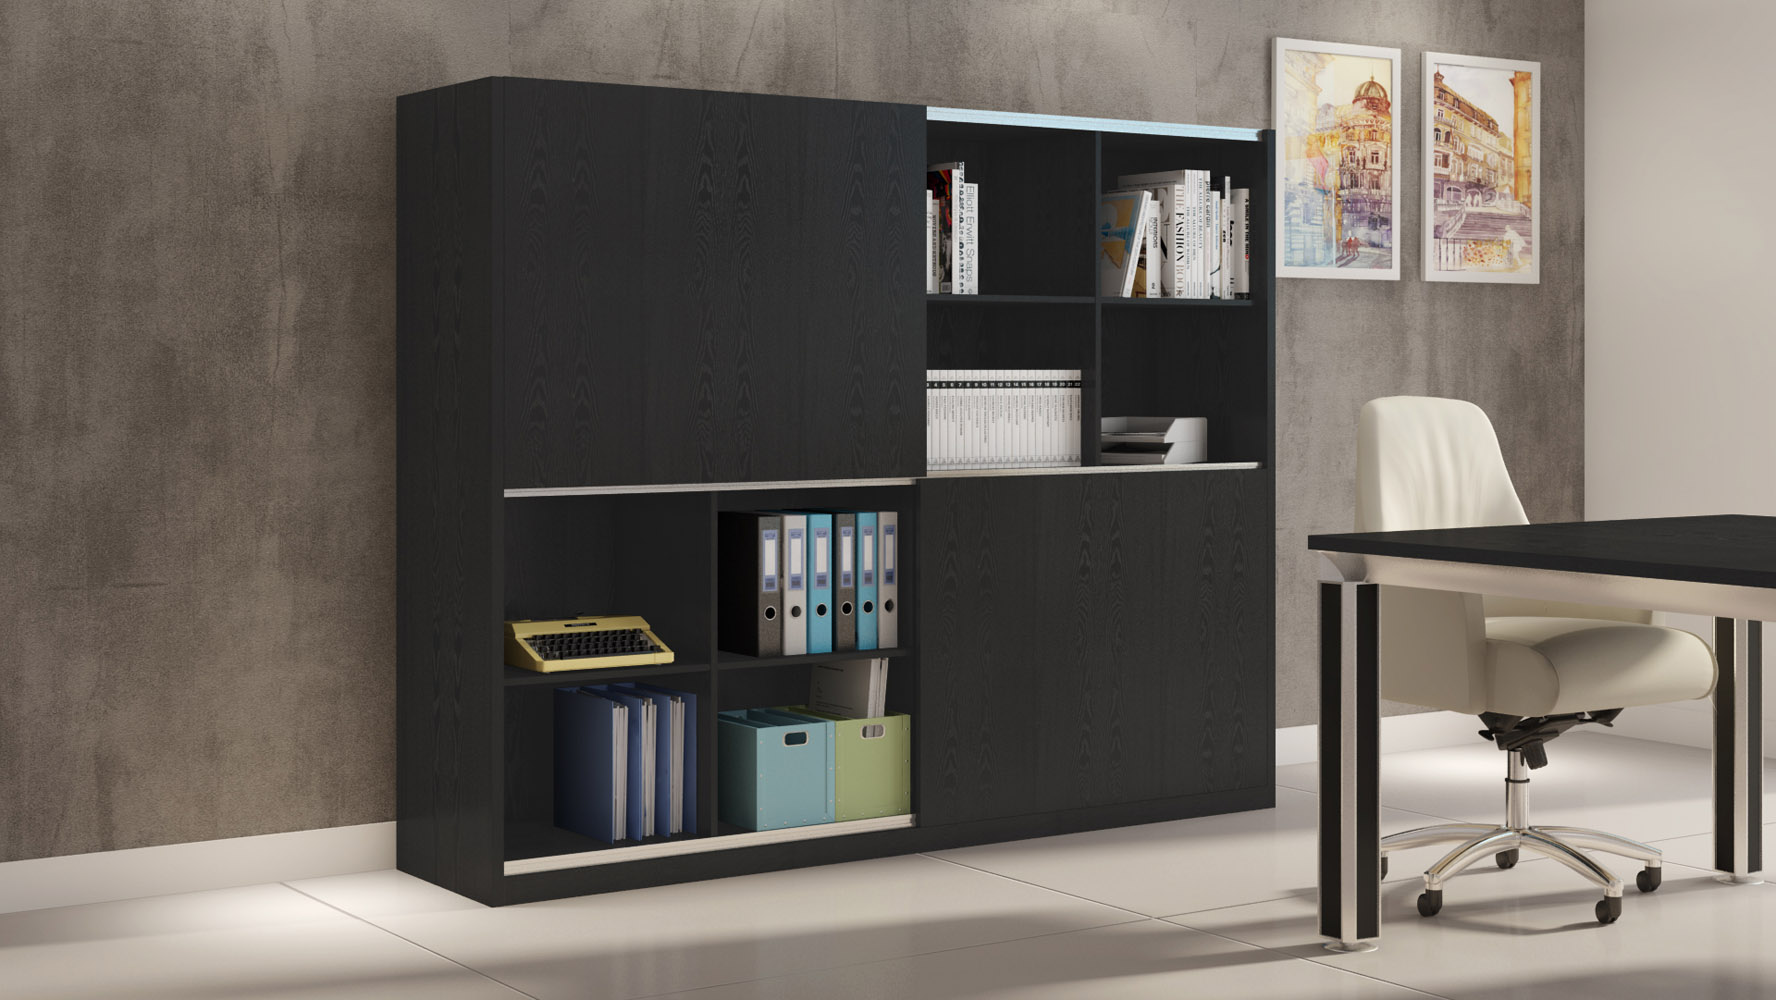 Jackson Black Wood Bookcase Wall Unit Modern